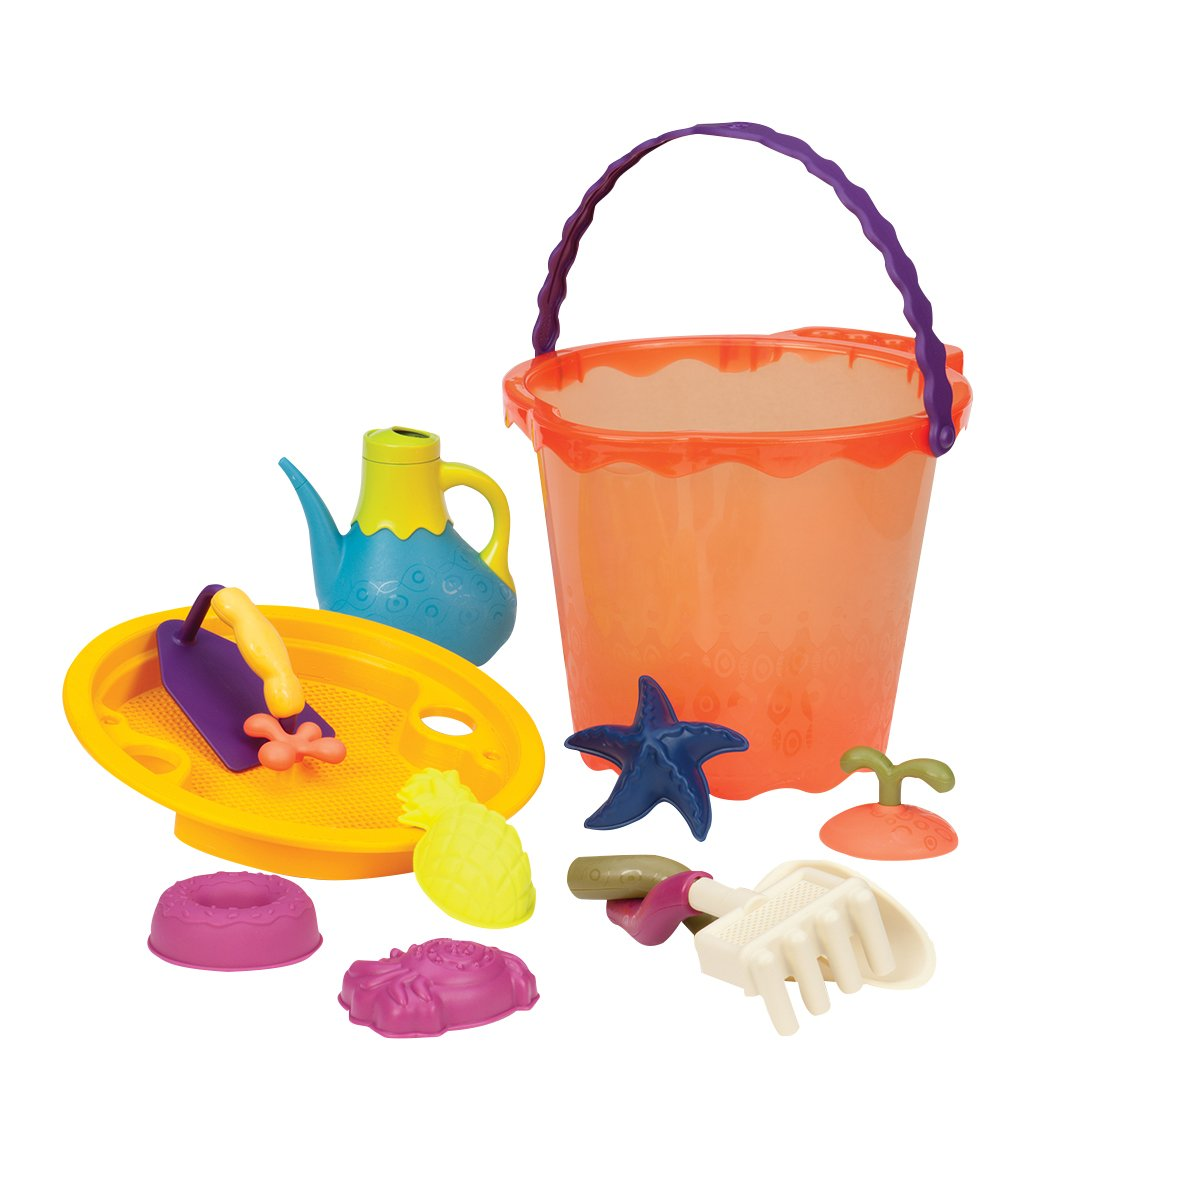 B. toys – Shore Thing – Large Beach Playset – Large Bucket Set (Papaya) with 11 Funky Sand Toys for Kids – Phthalates and BPA Free – 18 m+